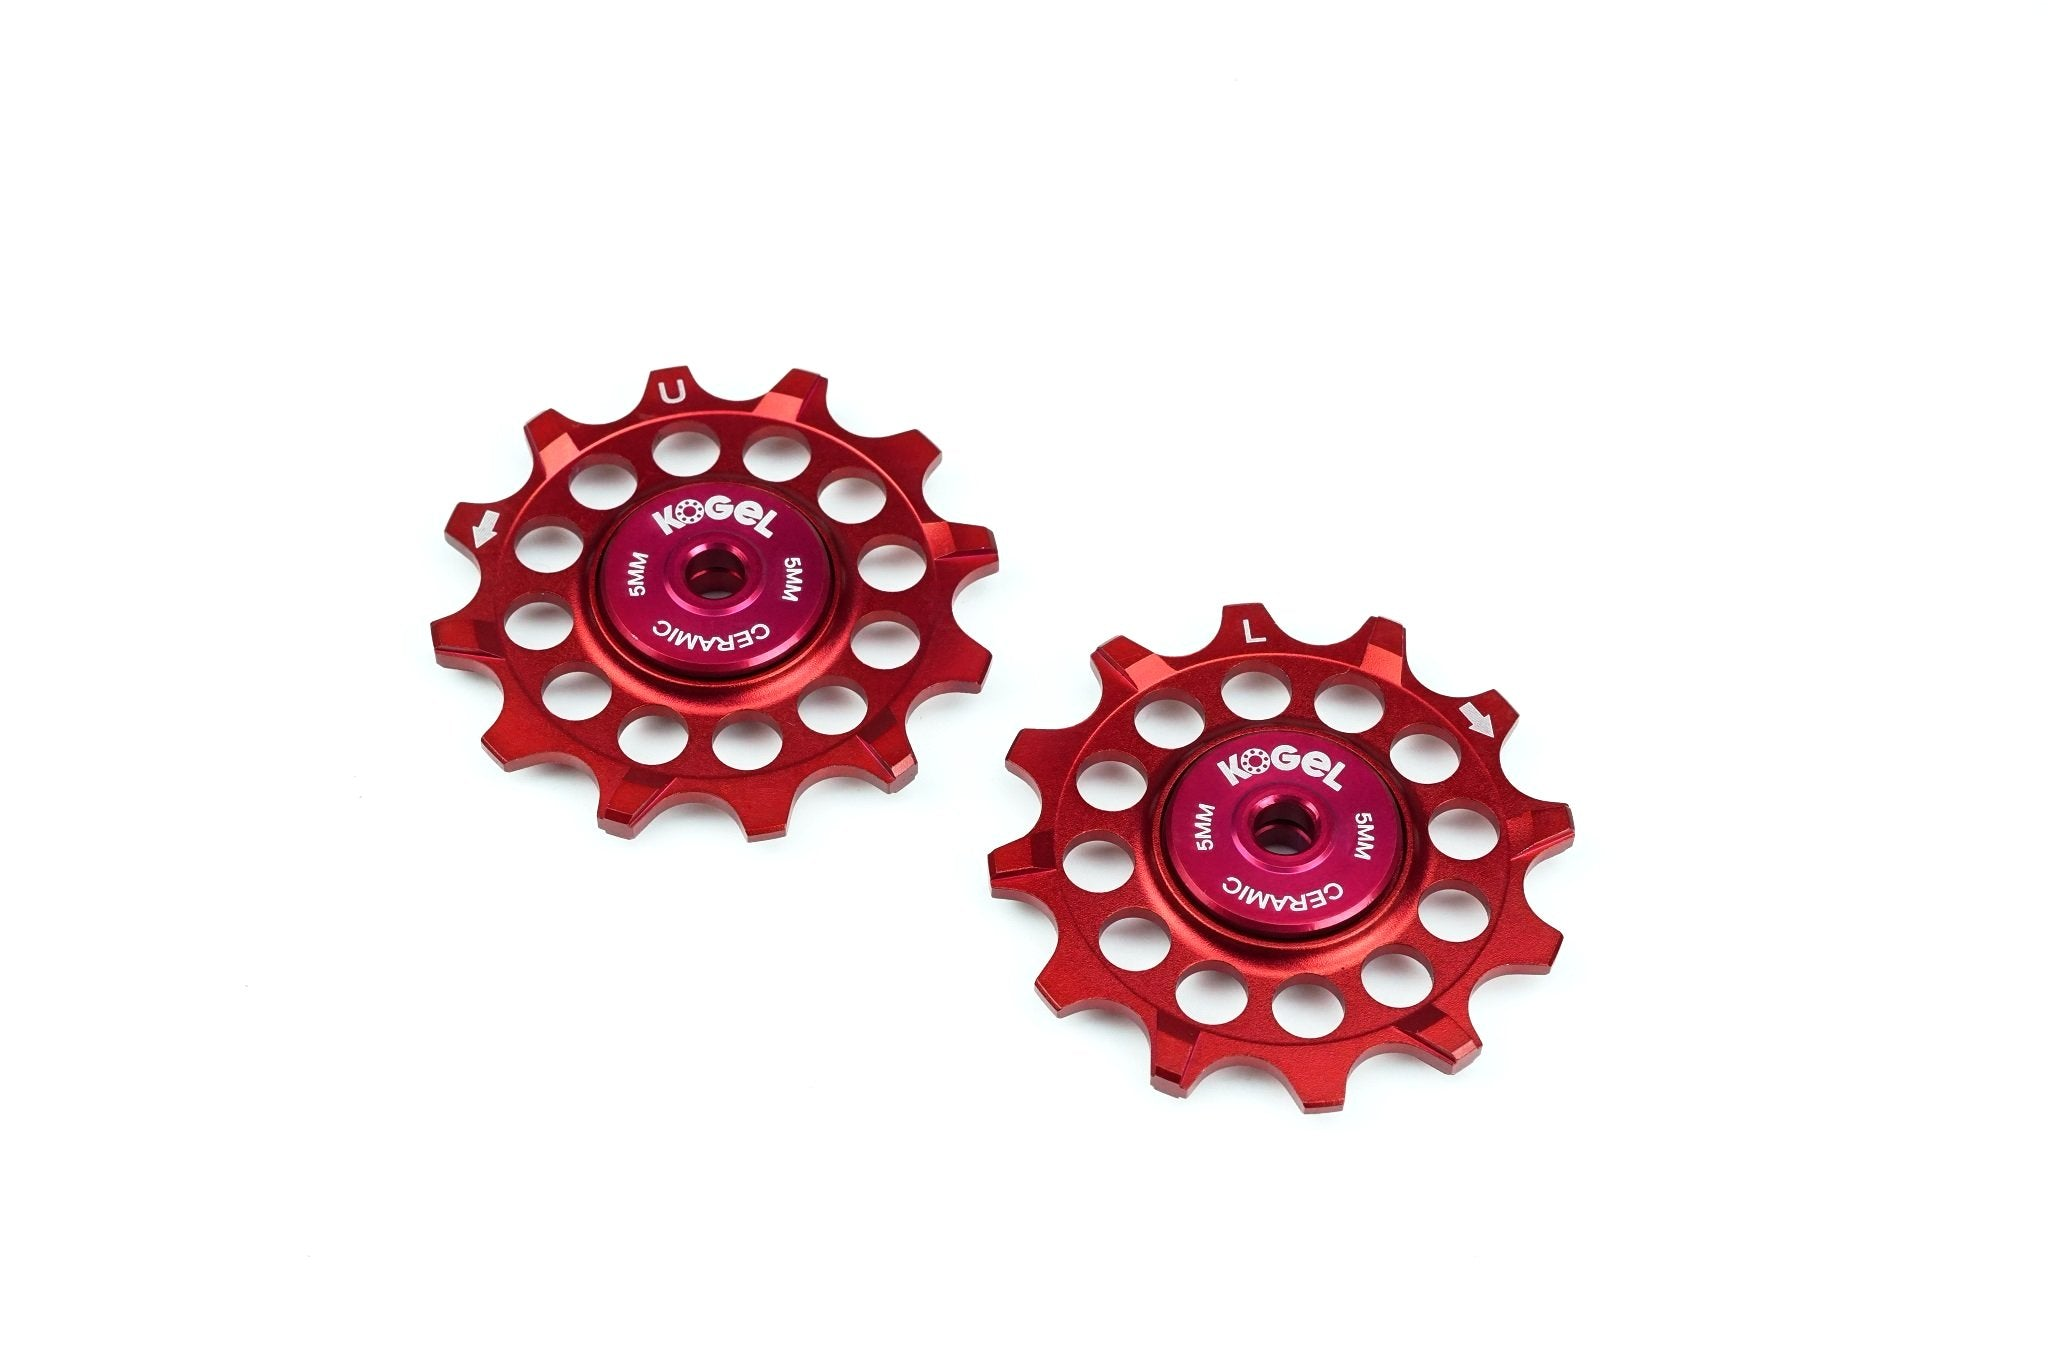 Fire Engine Red 12 tooth narrow wide pulleys for Sram and Shimano